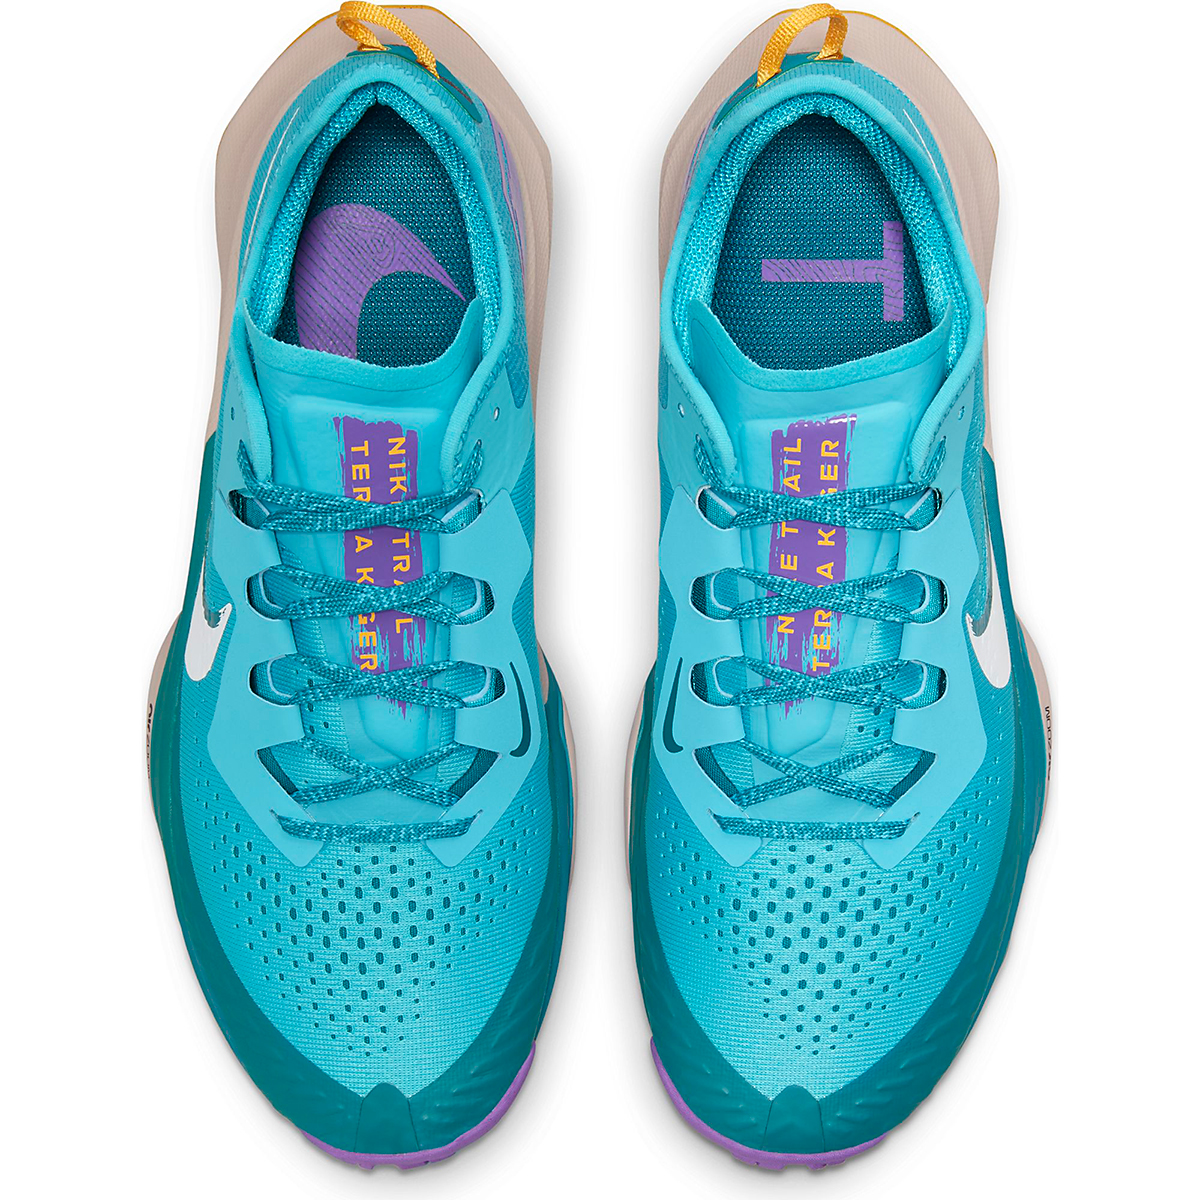 Men's Nike Air Zoom Terra Kiger 7 Trail Running Shoe - Color: Turquoise Blue/White/Mystic Teal - Size: 6 - Width: Regular, Turquoise Blue/White/Mystic Teal, large, image 3